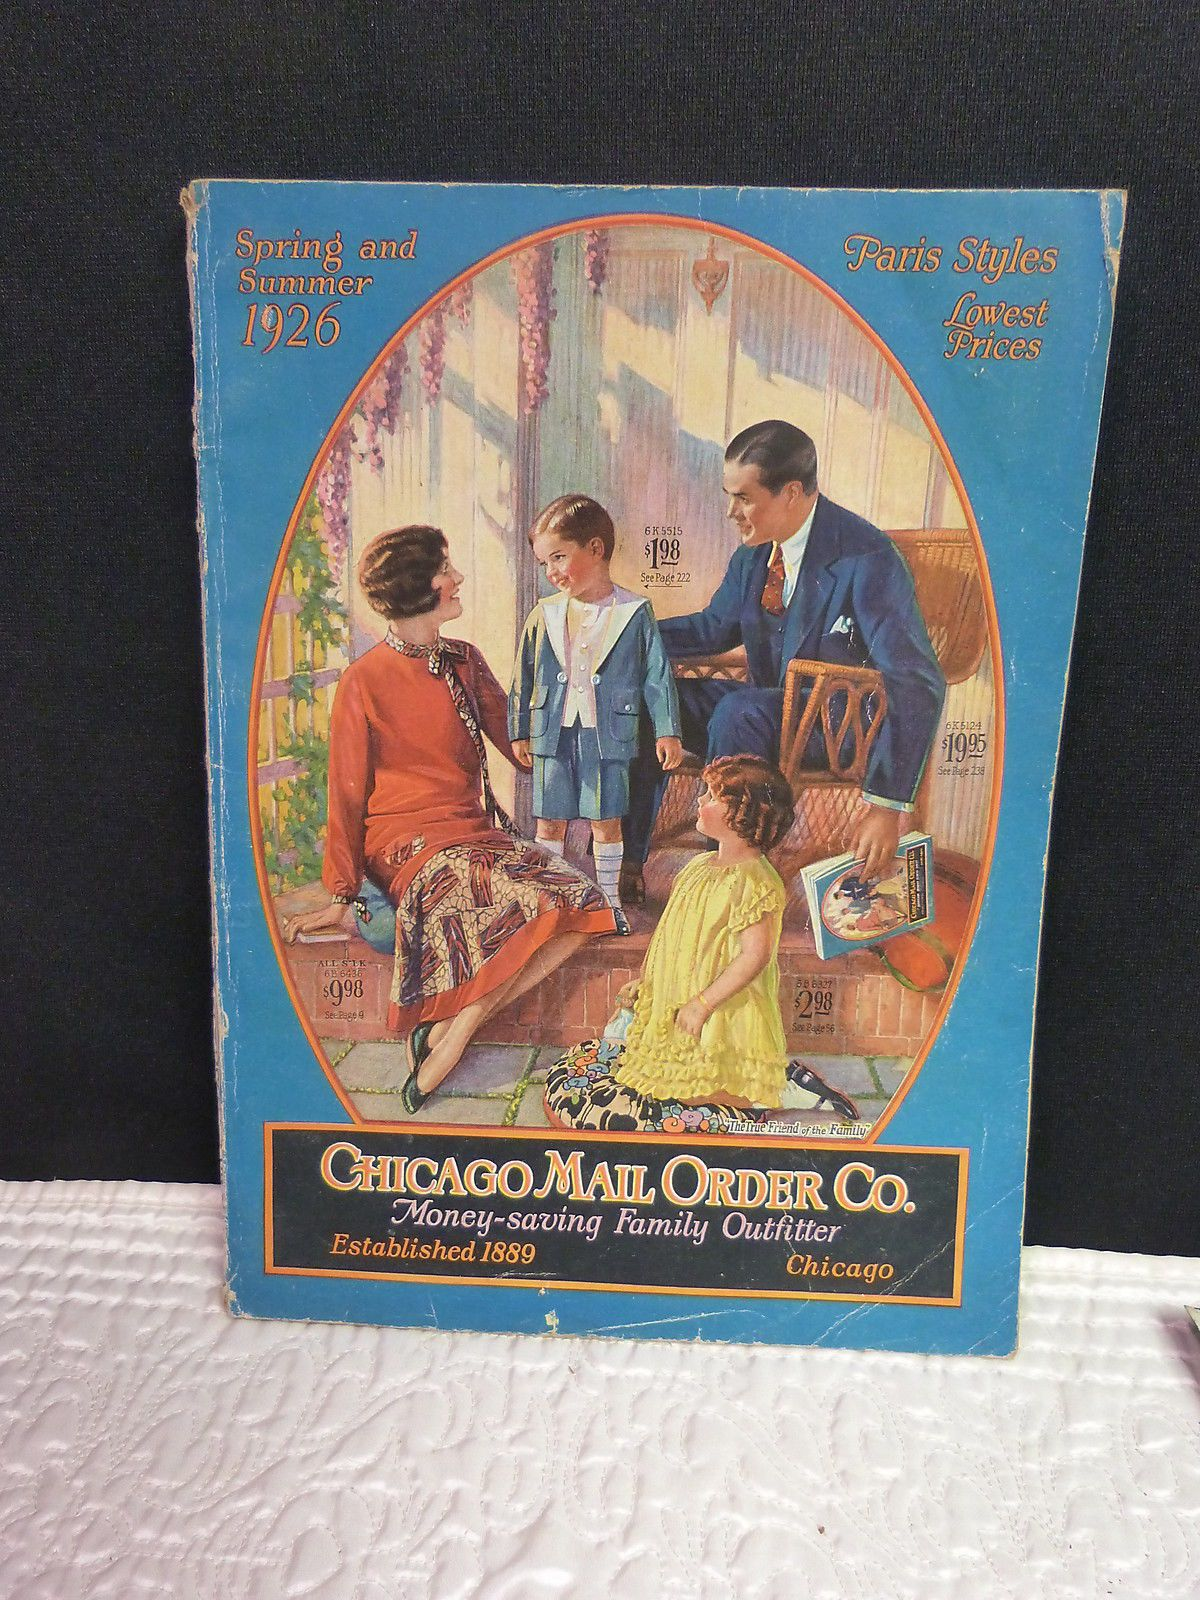 9716188a00f Vintage 1926 Spring Summer Chicago Mail Order Co Paris Styles Catalogue  Original